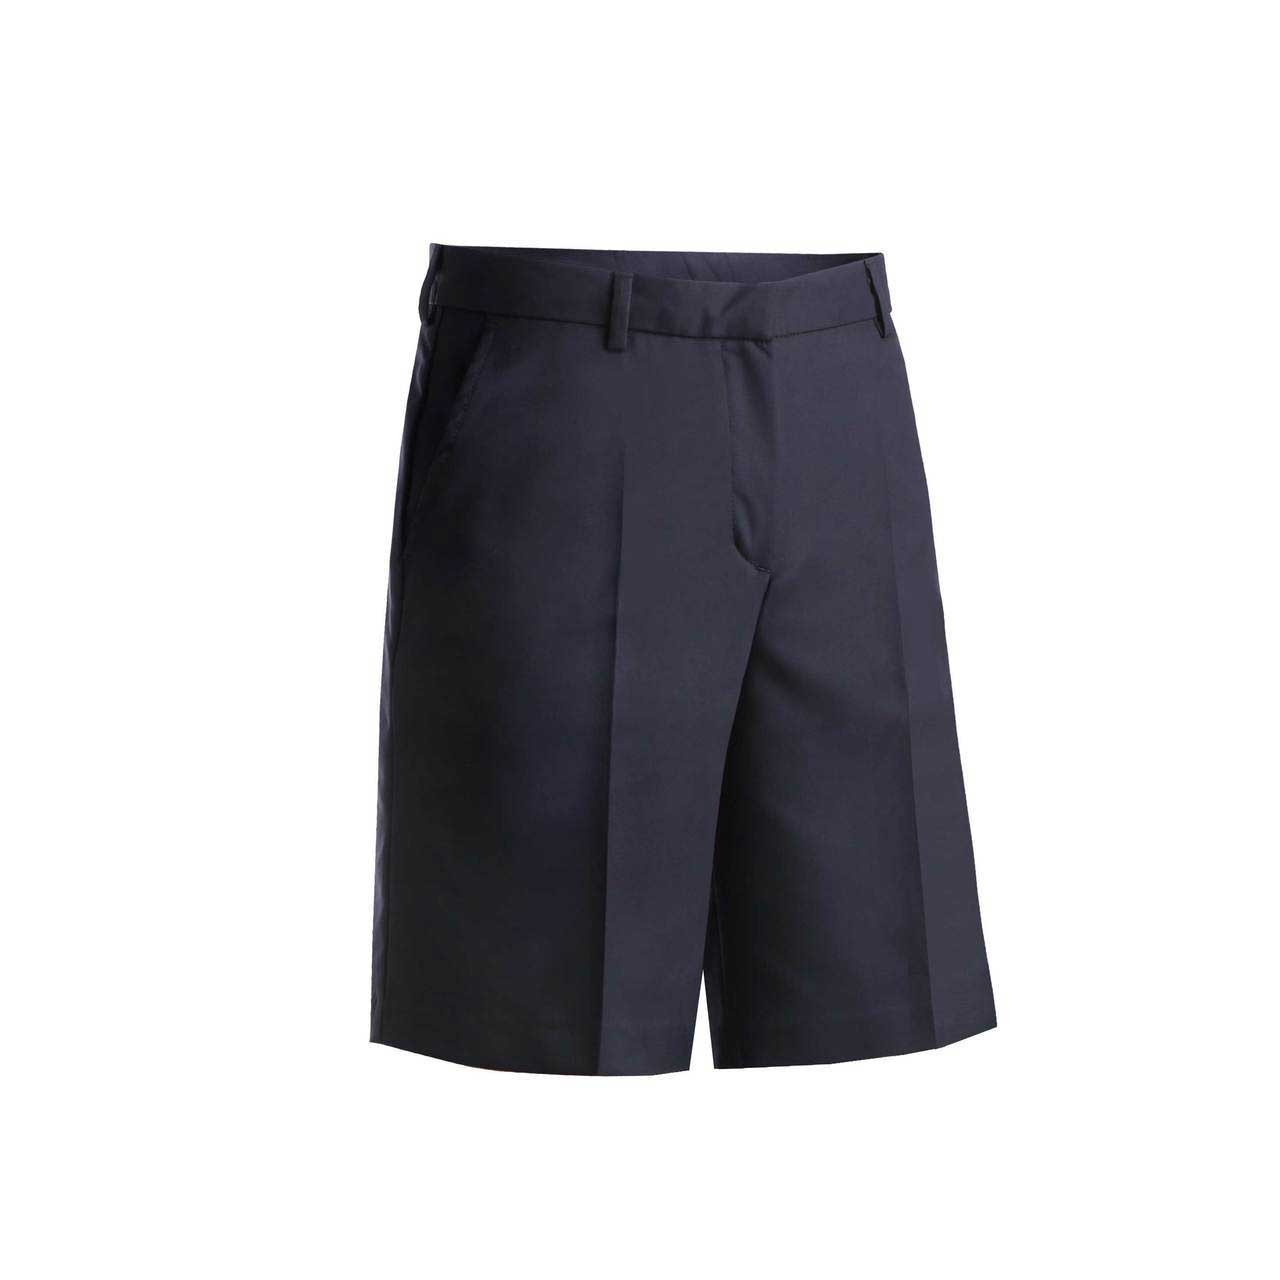 Women's Microfiber Uniform Shorts